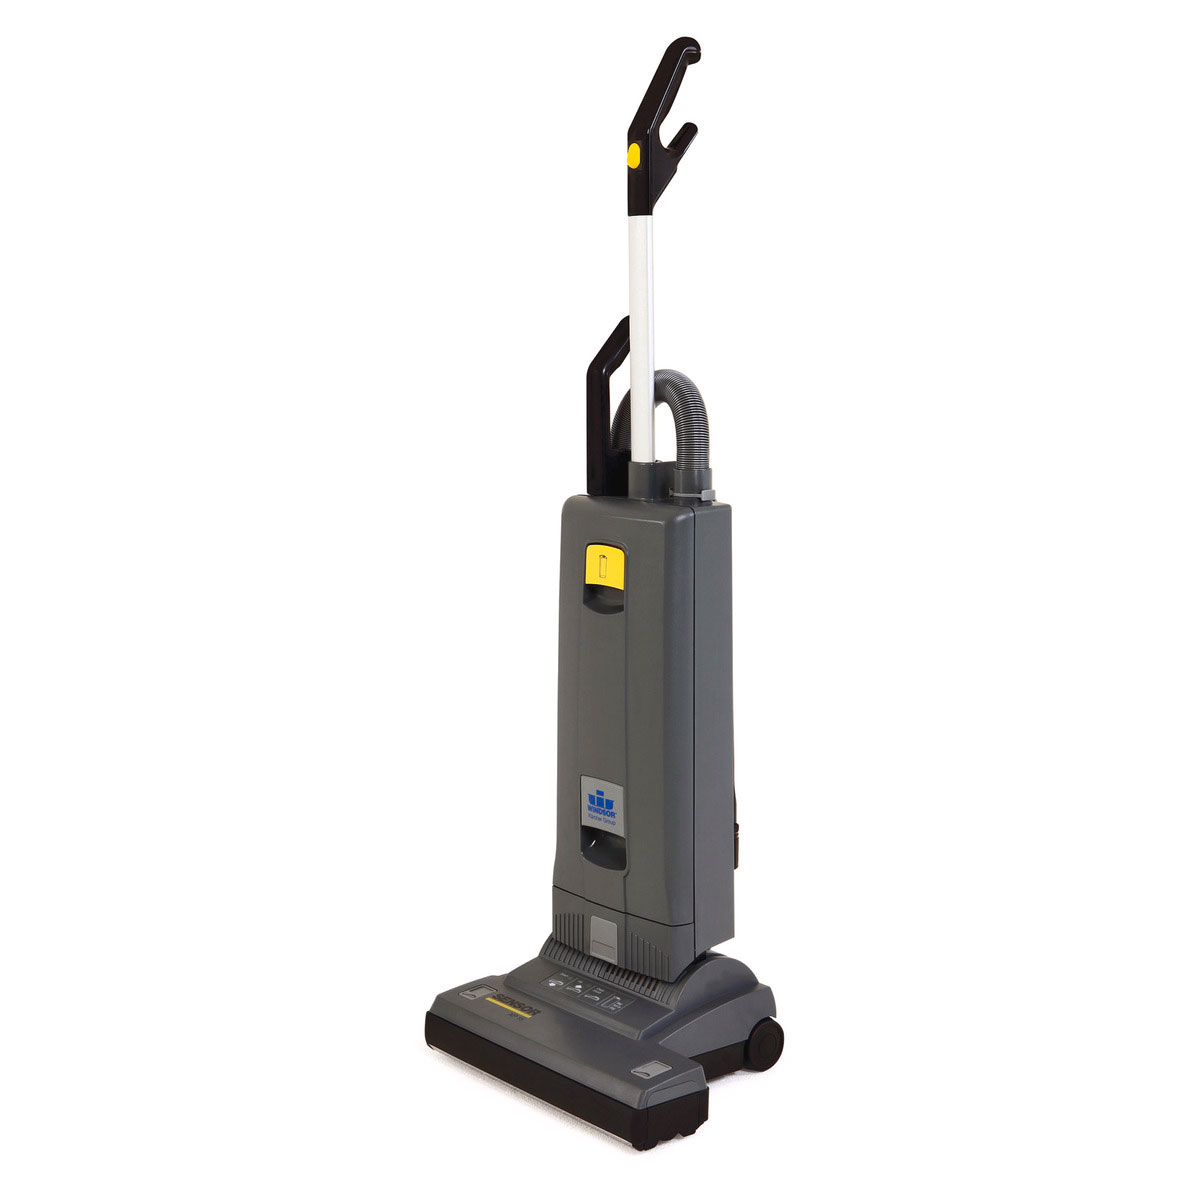 Windsor Sensor XP 15 Upright Vacuum Cleaner w tools 15inch 1.012-027.0 FREE Shipping 3 Year Warranty